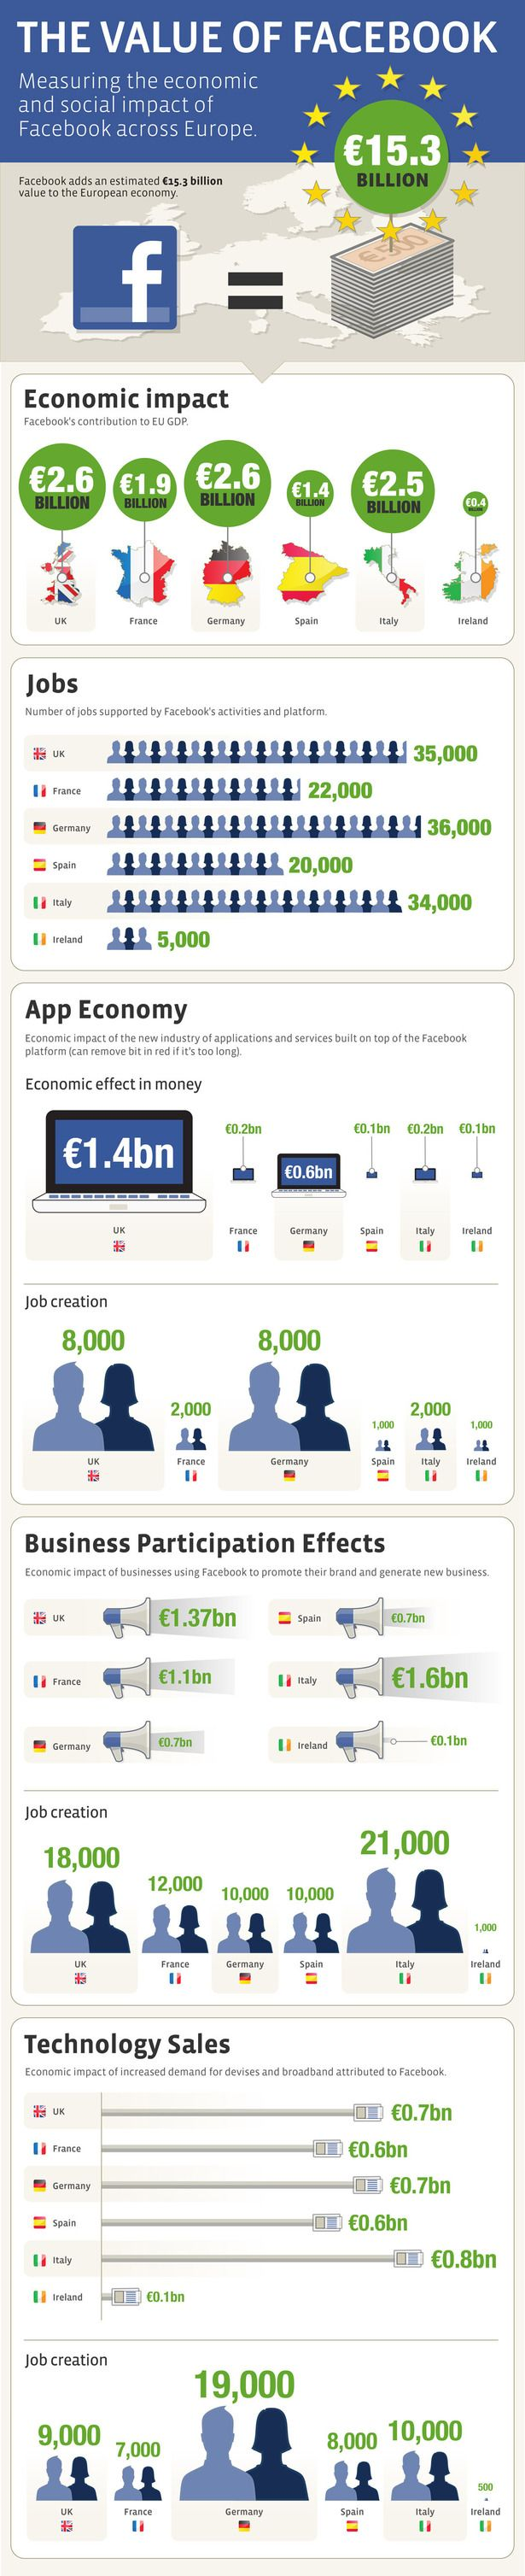 A recent Deloitte study states that Facebook is worth GBP 12.7bn to the EU economy and in the UK Facebook supports 35,200 jobs and contributes GBP 2.2bn to the country's GDP.    For marketing and social media infographics that I have curated visit this board http://pinterest.com/krishnade/marketing-infographics/